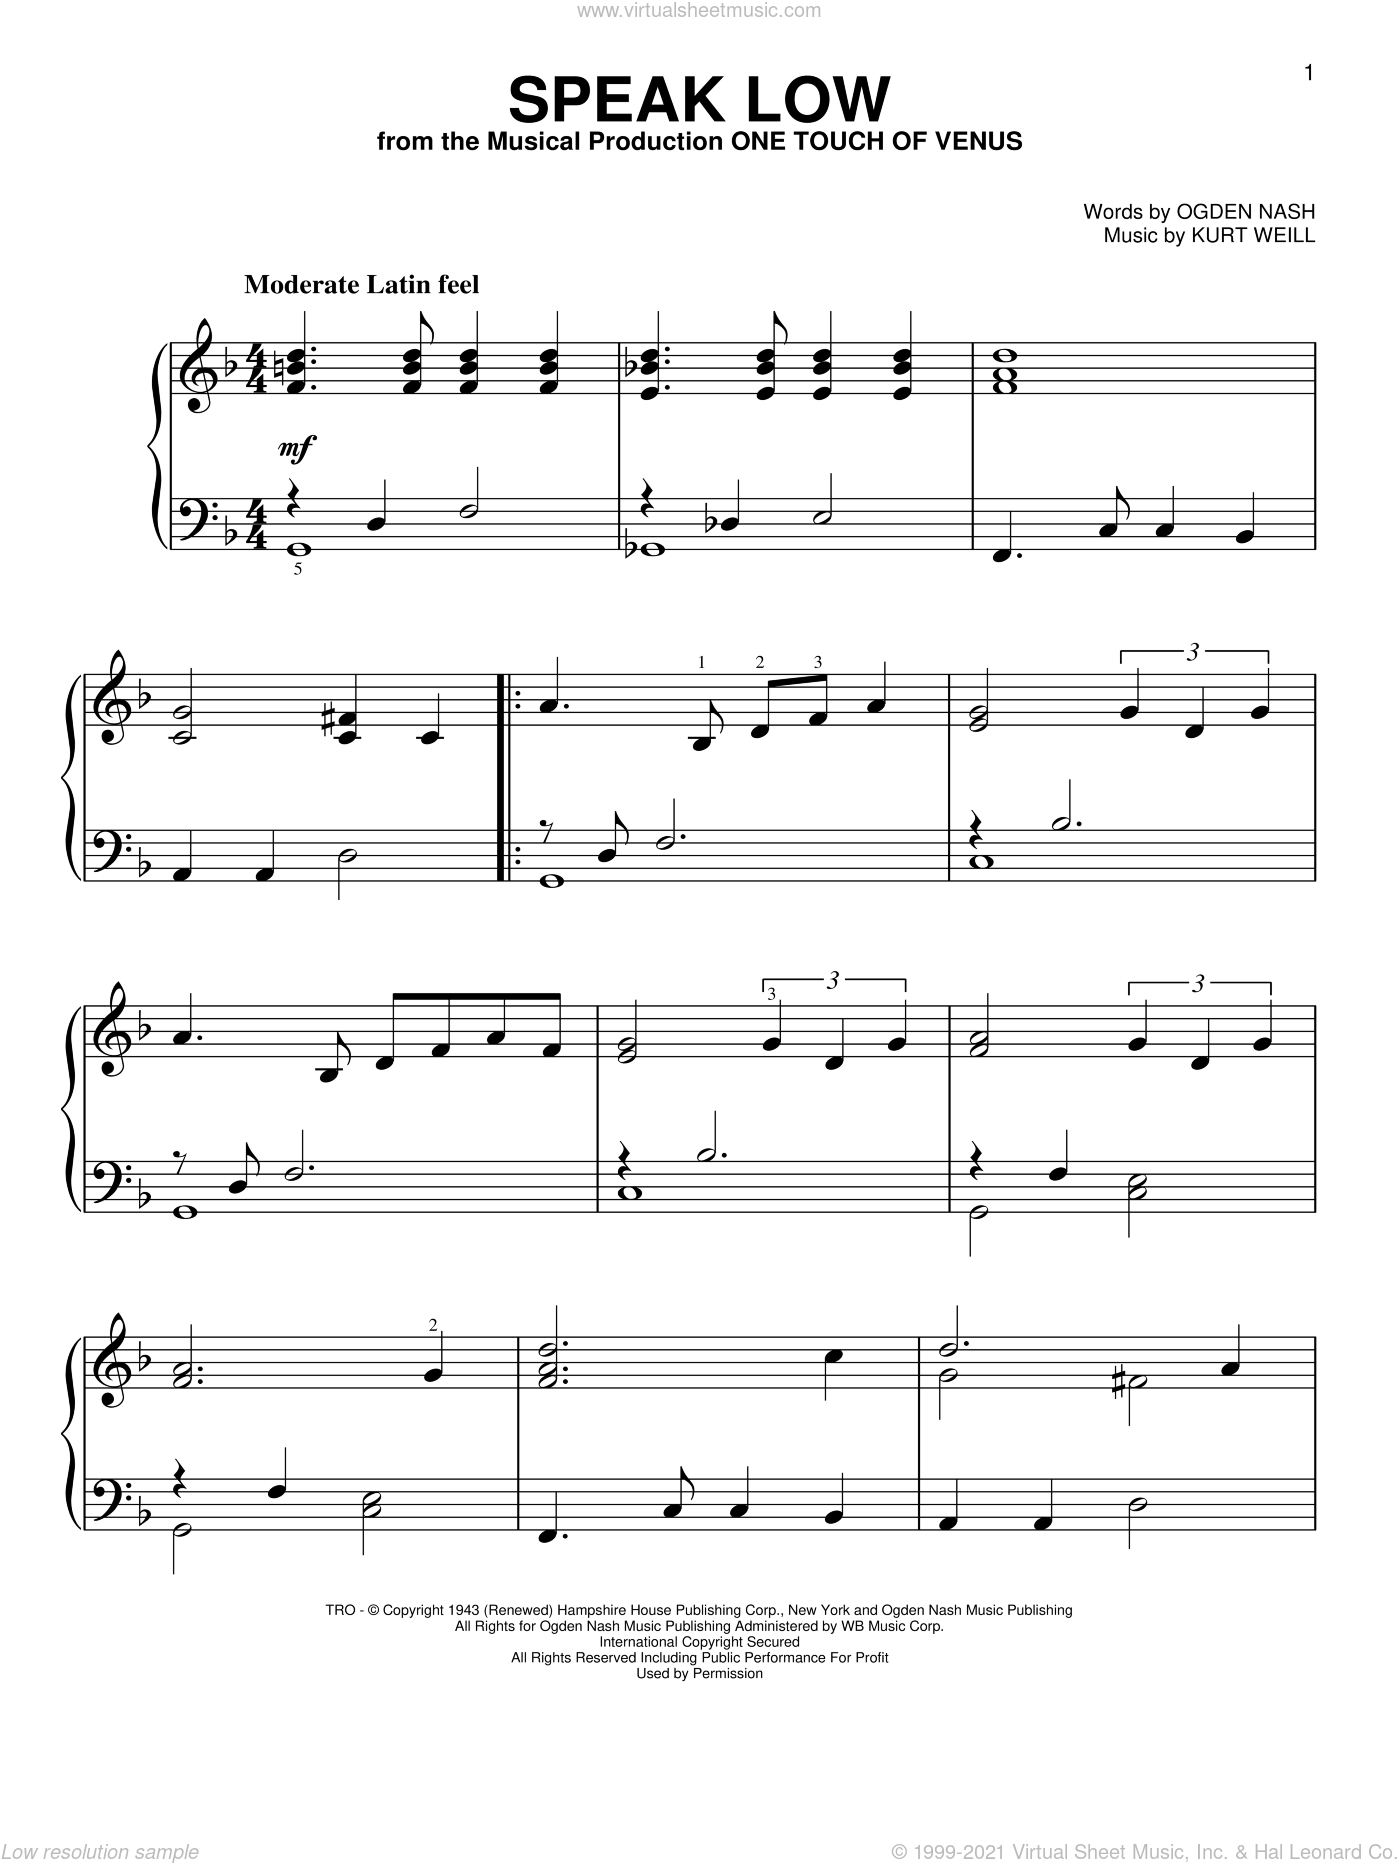 Speak Low sheet music for piano solo by Kurt Weill and Ogden Nash. Score Image Preview.